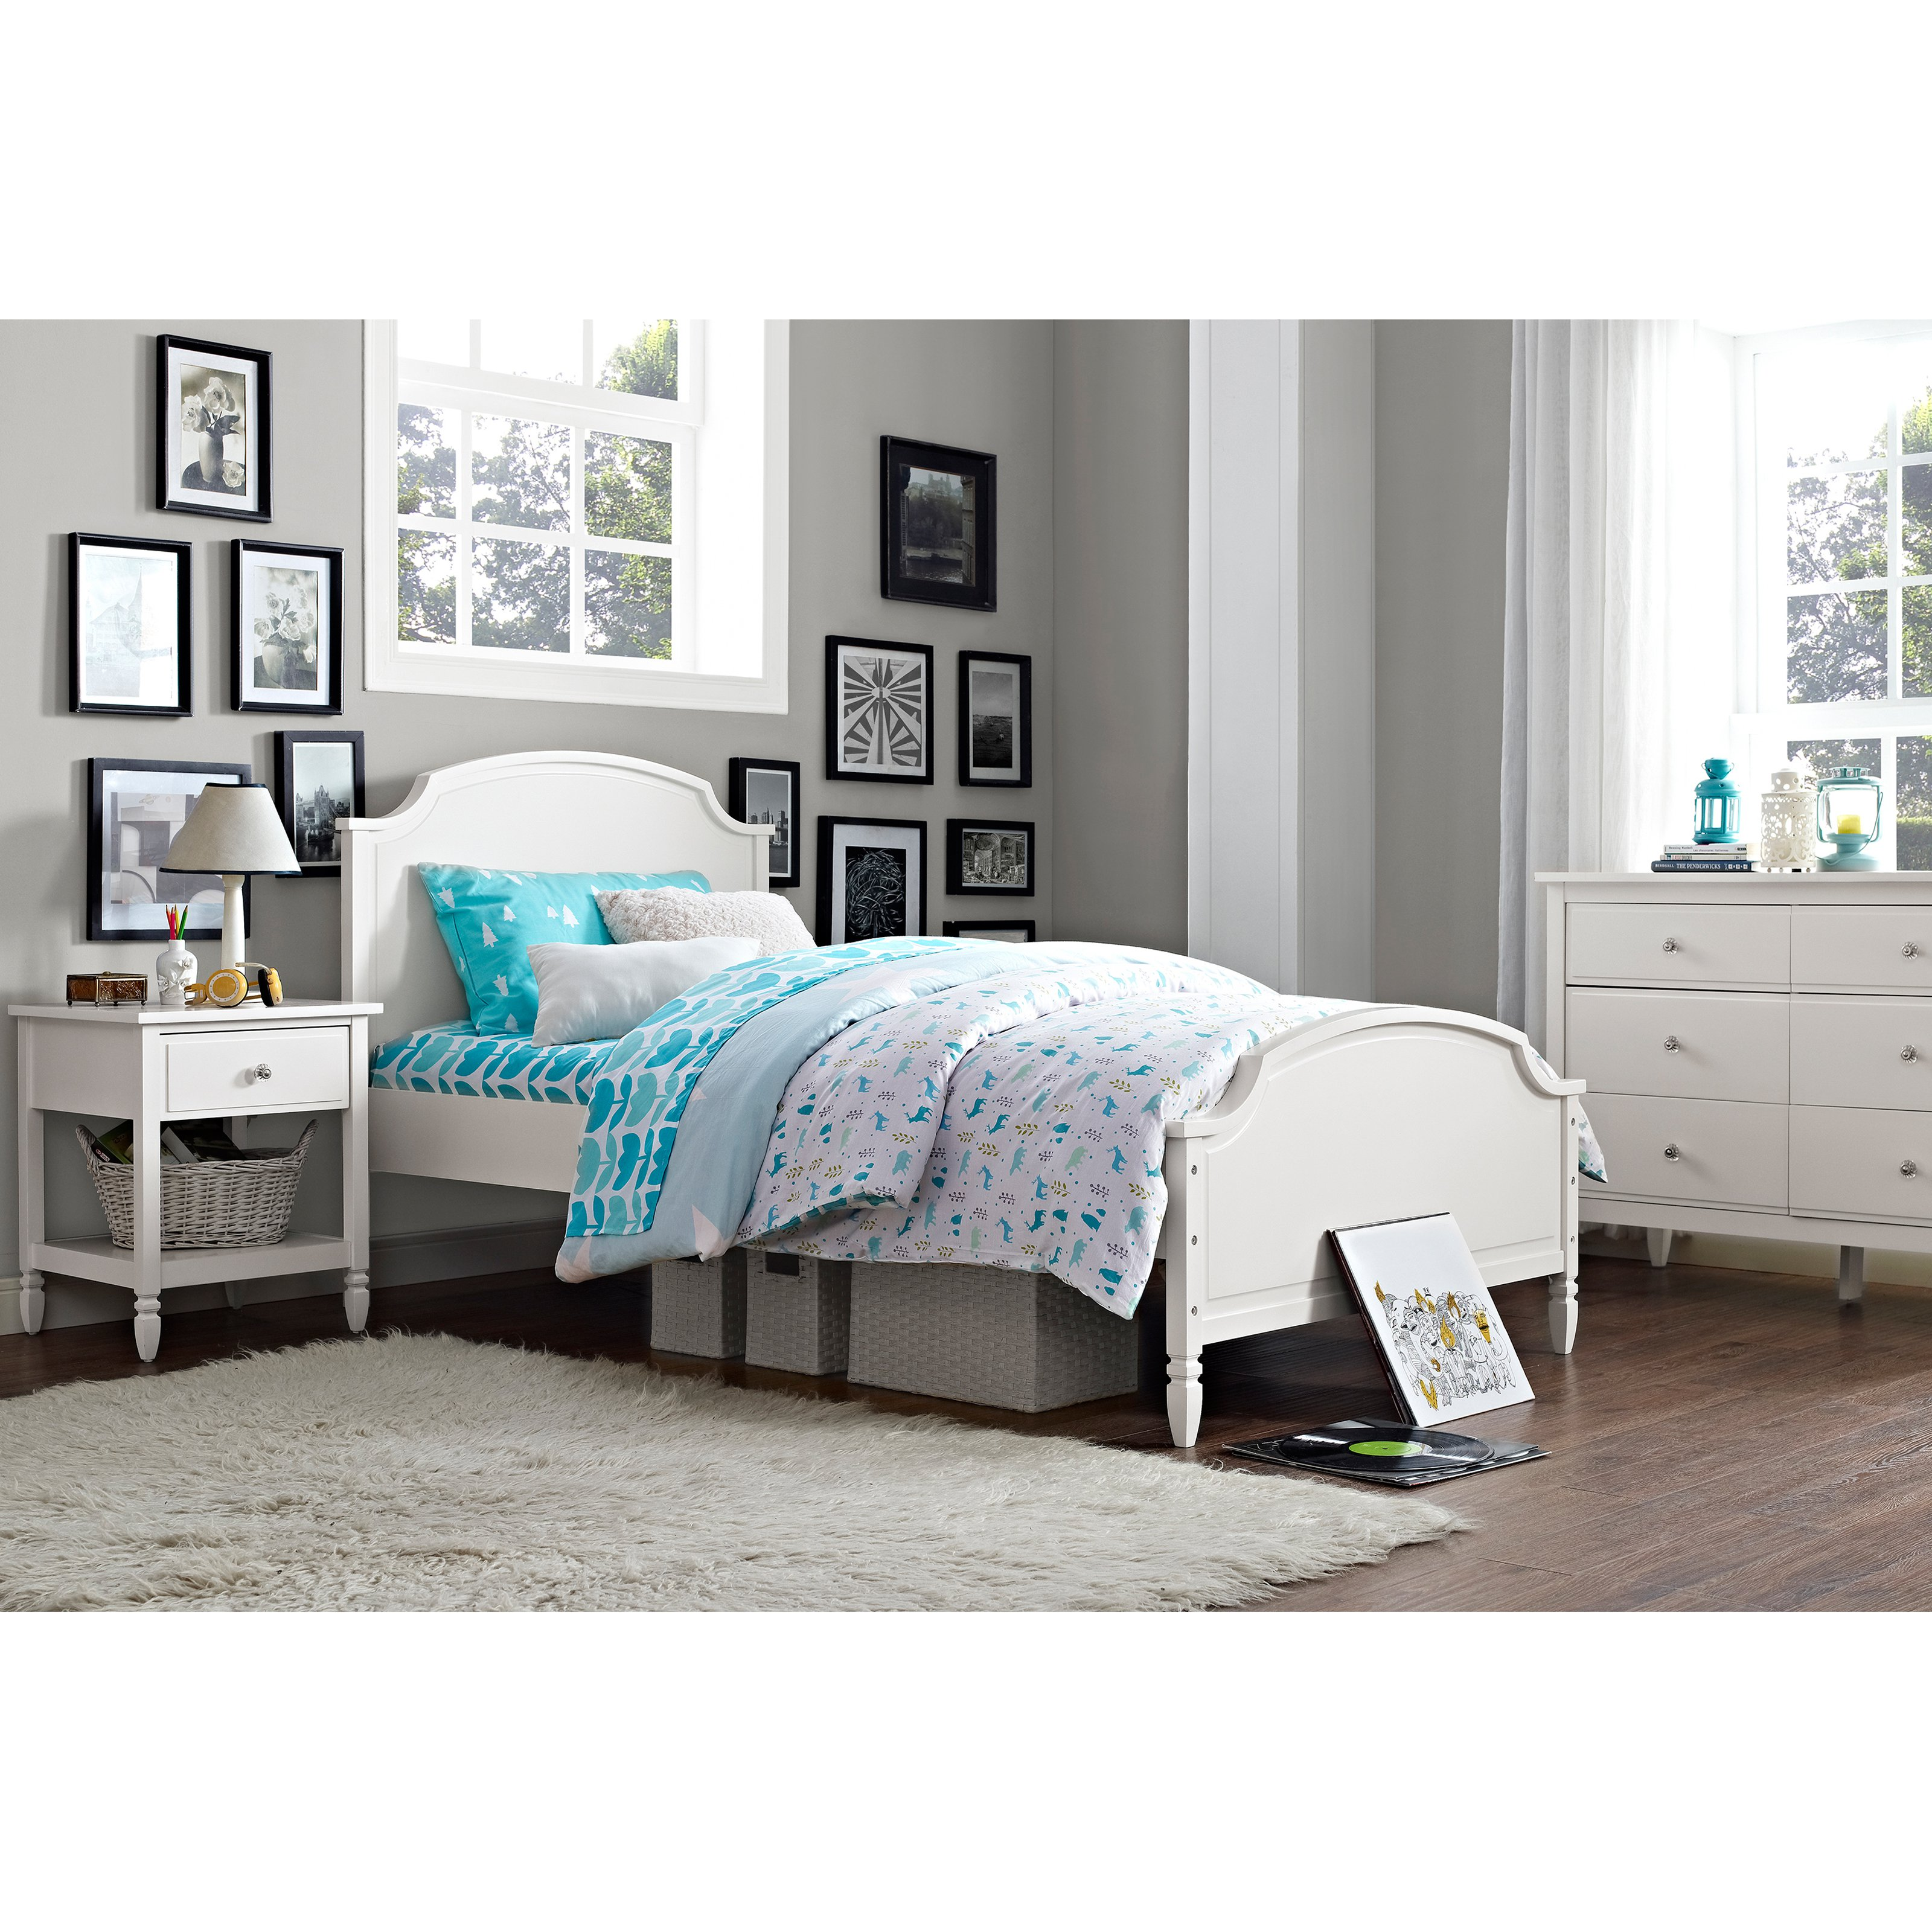 Dorel Living Vivienne Twin Bed with Optional Trundle by Dorel Asia